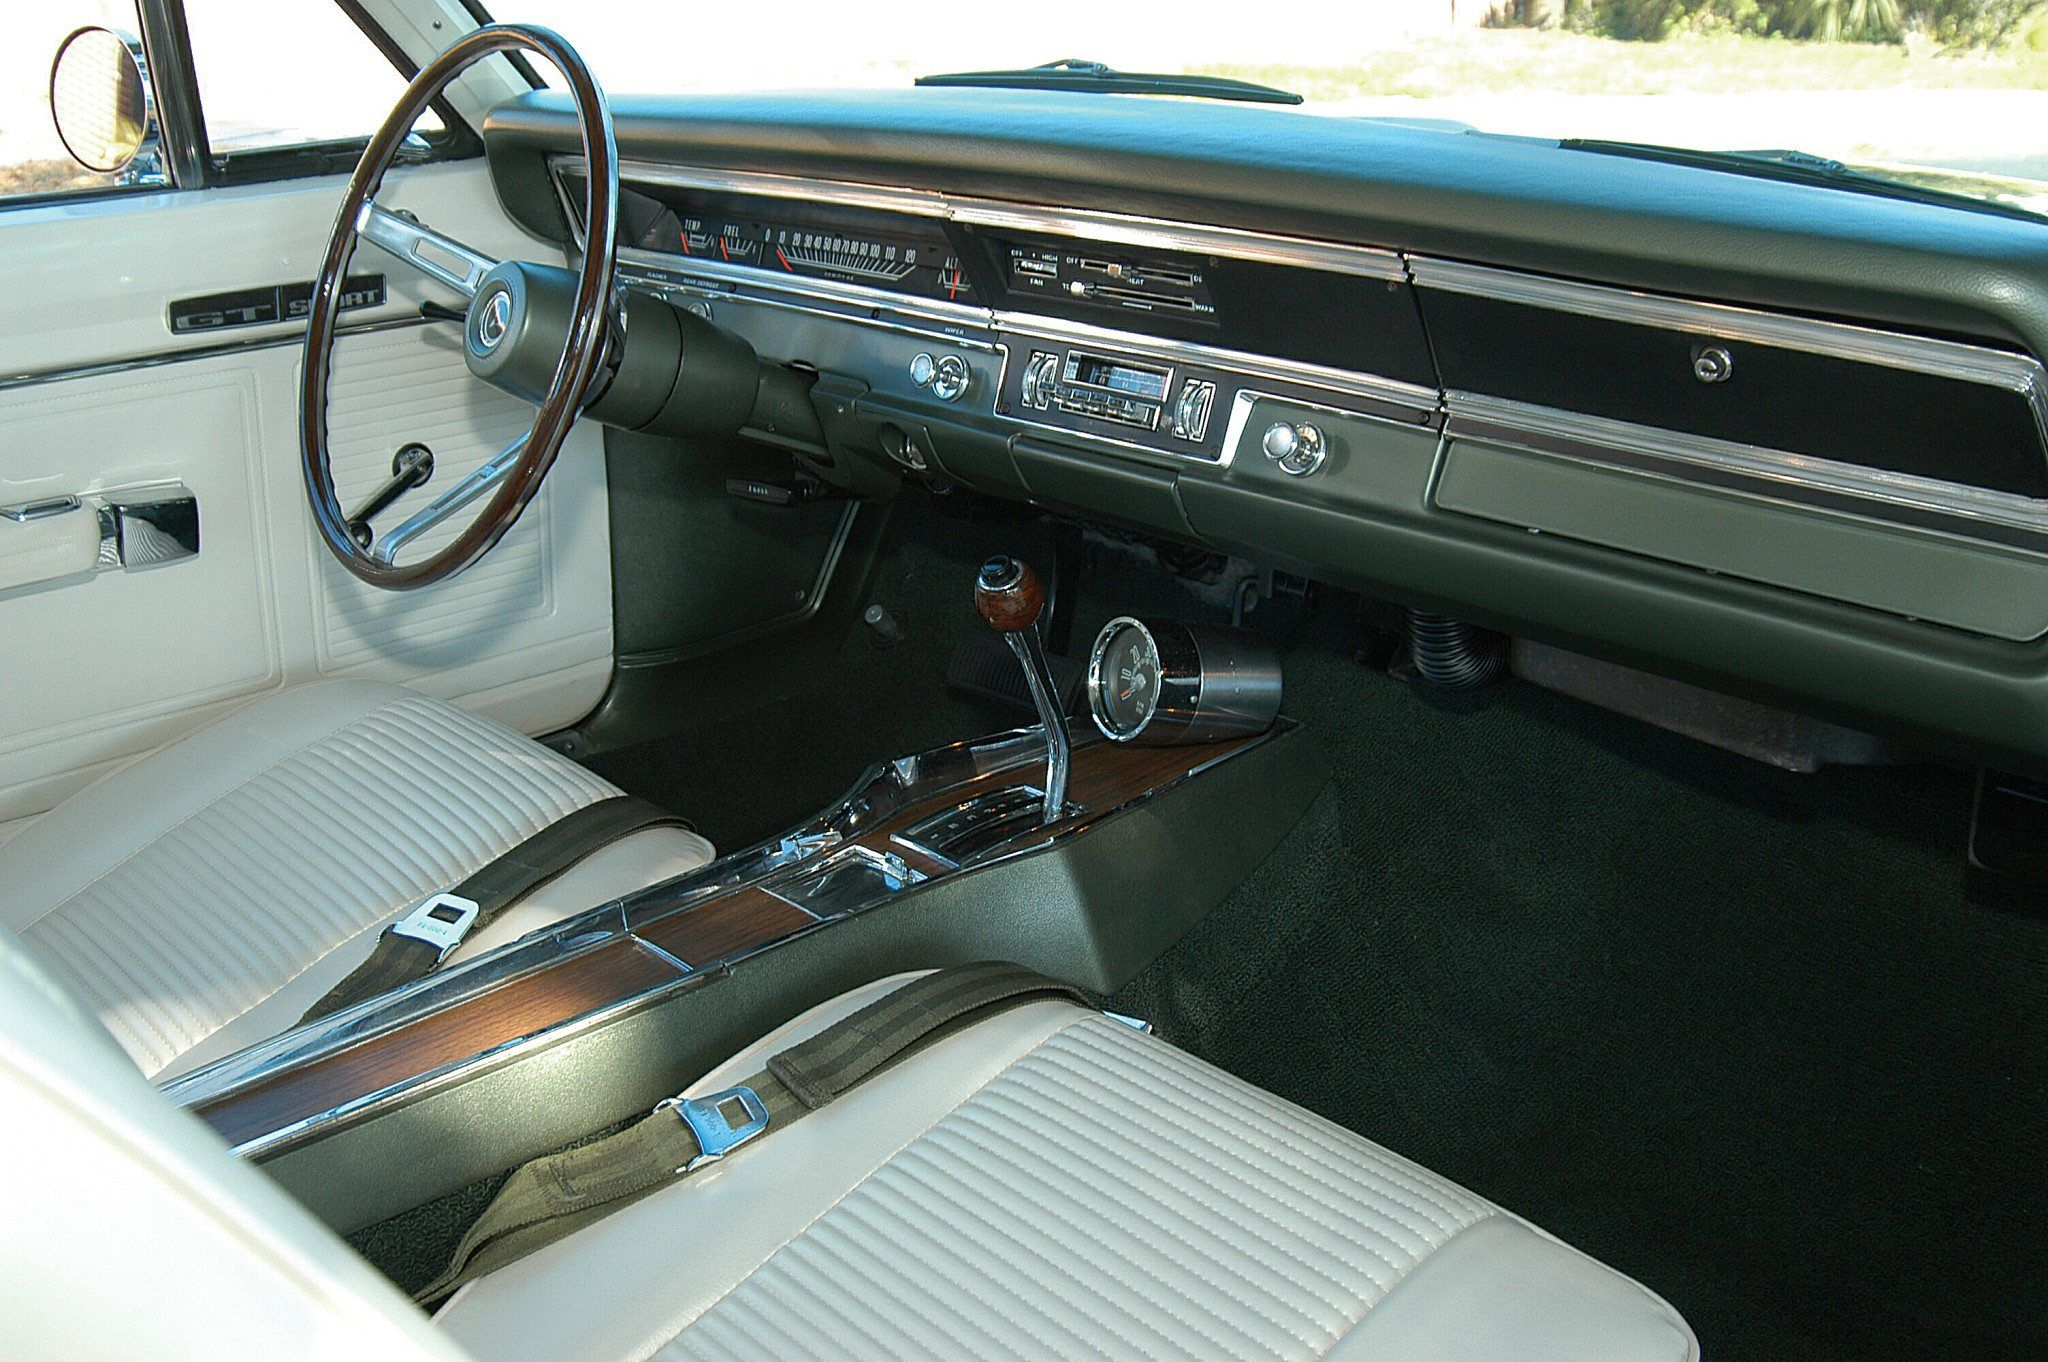 1969 Dodge Dart 340 GTS Passenger Side Dashboard